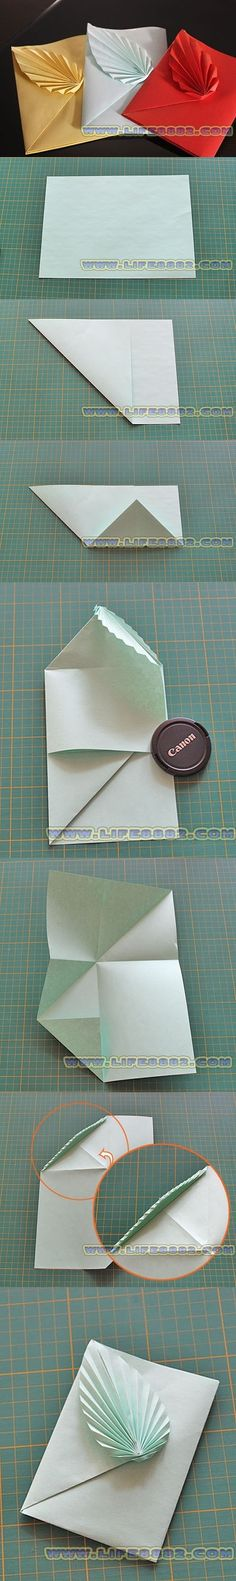 DIY Paper Folded Gift Envelope | www.FabArtDIY.com LIKE Us on Facebook ==> https://www.facebook.com/FabArtDIY